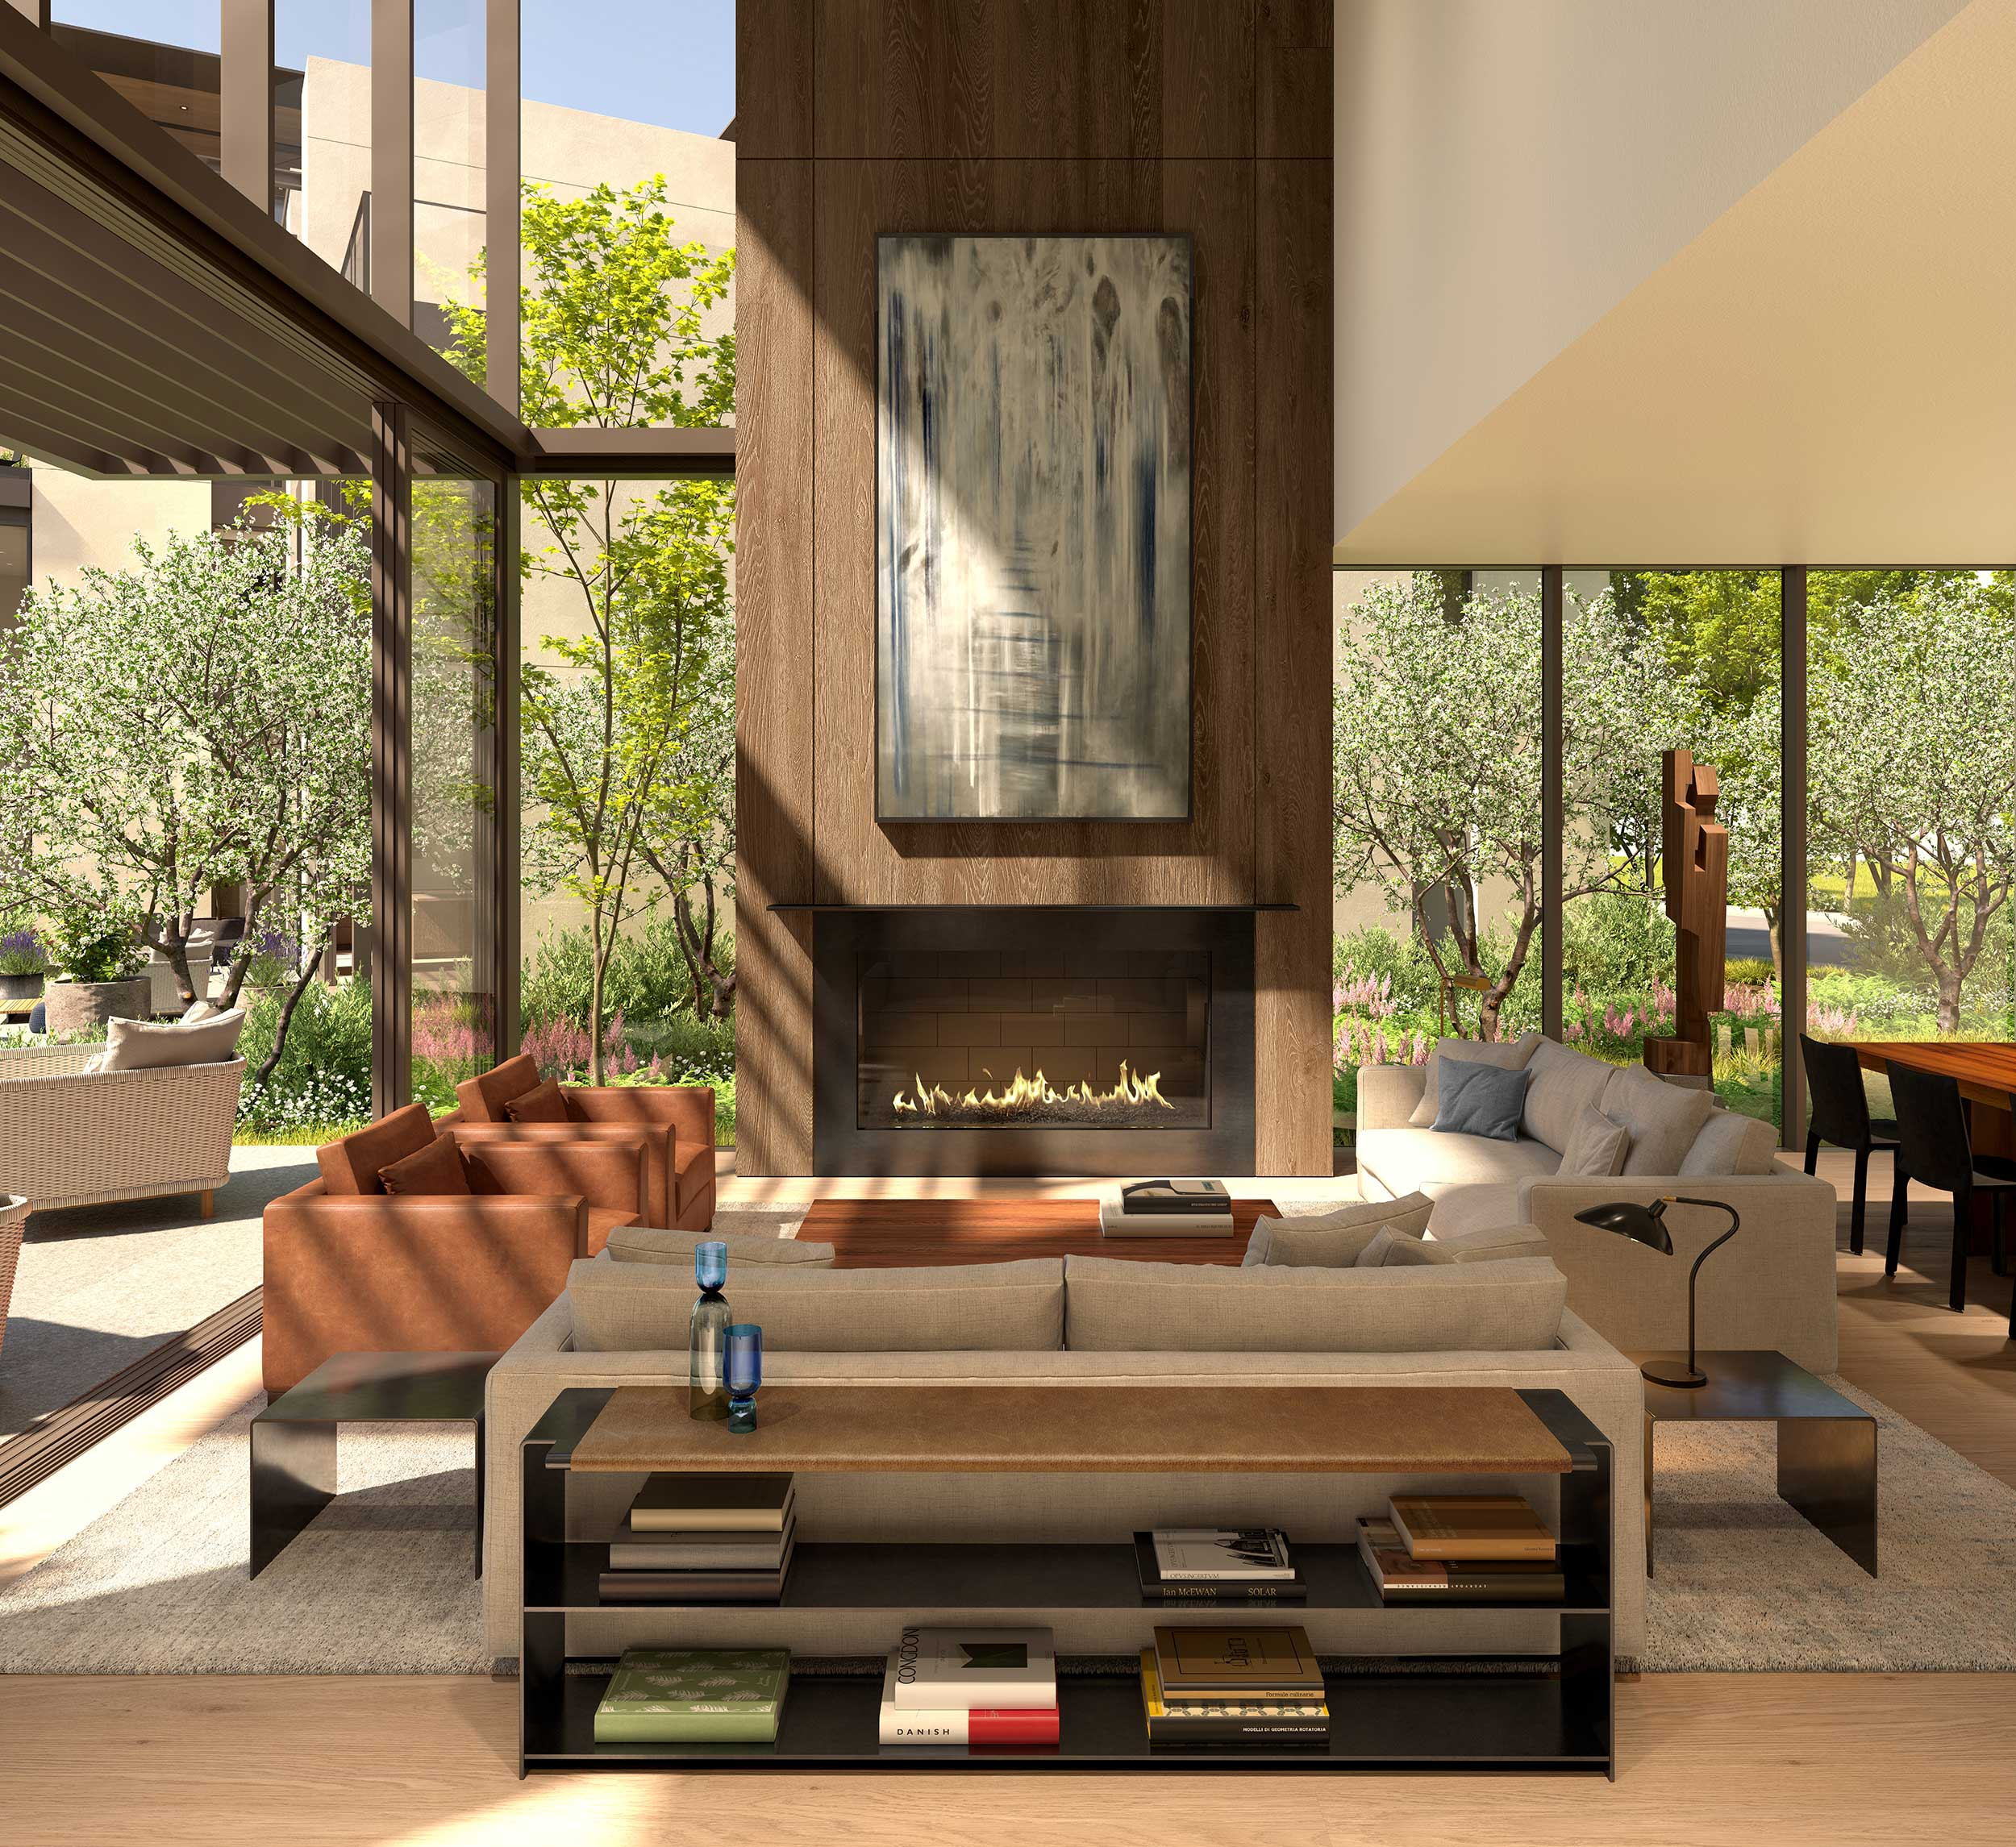 Large glass walls embrace natural light and provide a distinct connection to the outdoors.